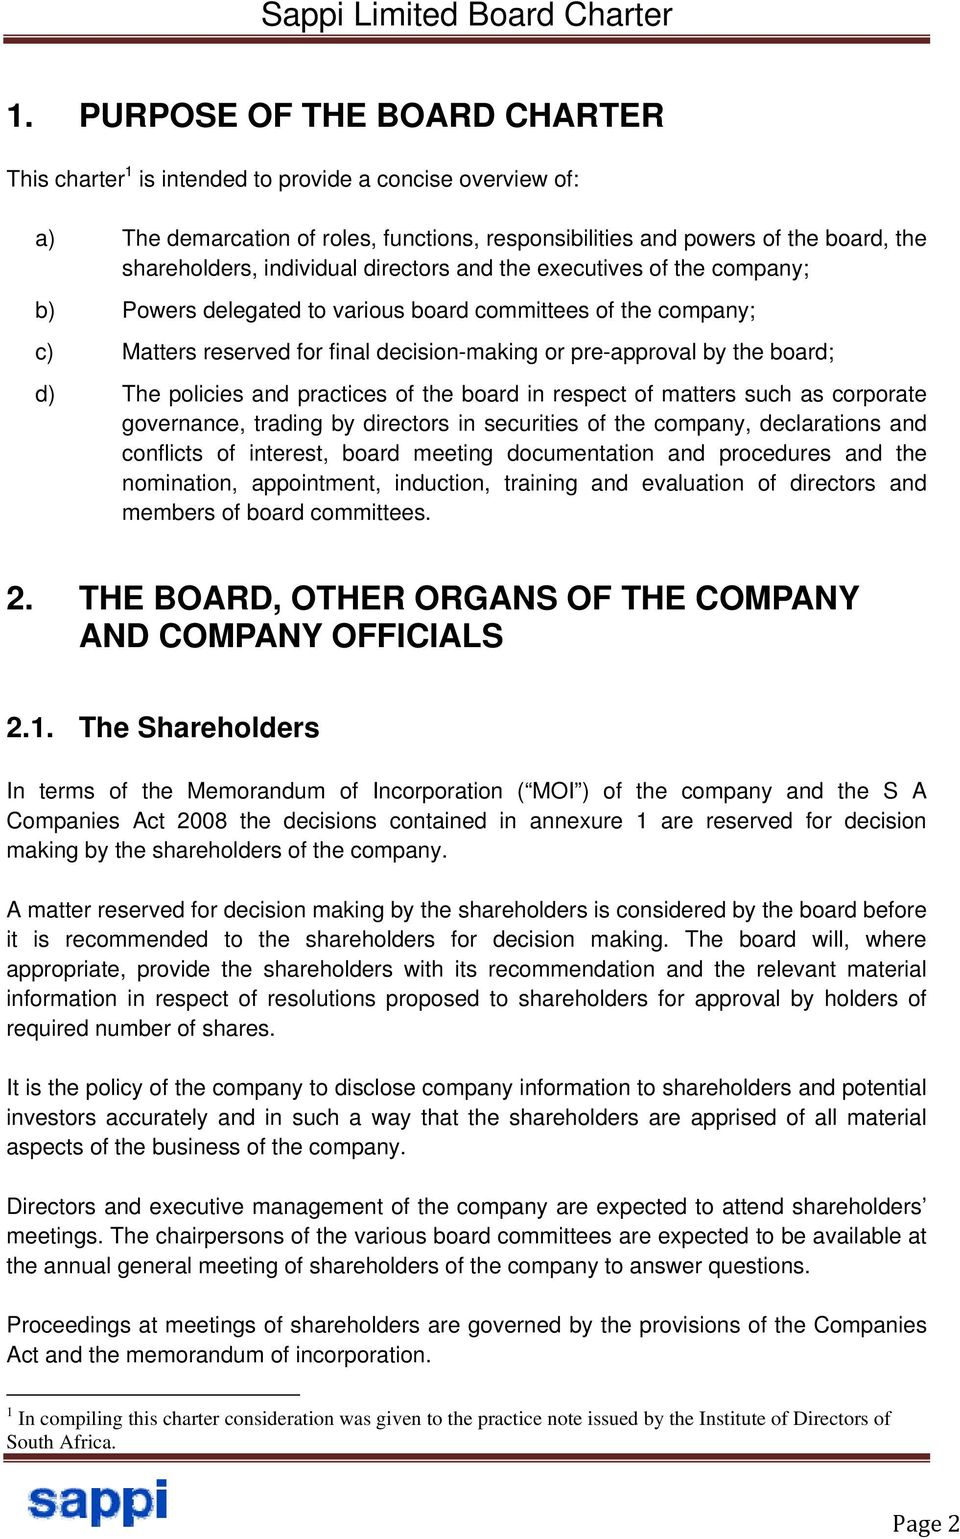 The policies and practices of the board in respect of matters such as corporate governance, trading by directors in securities of the company, declarations and conflicts of interest, board meeting